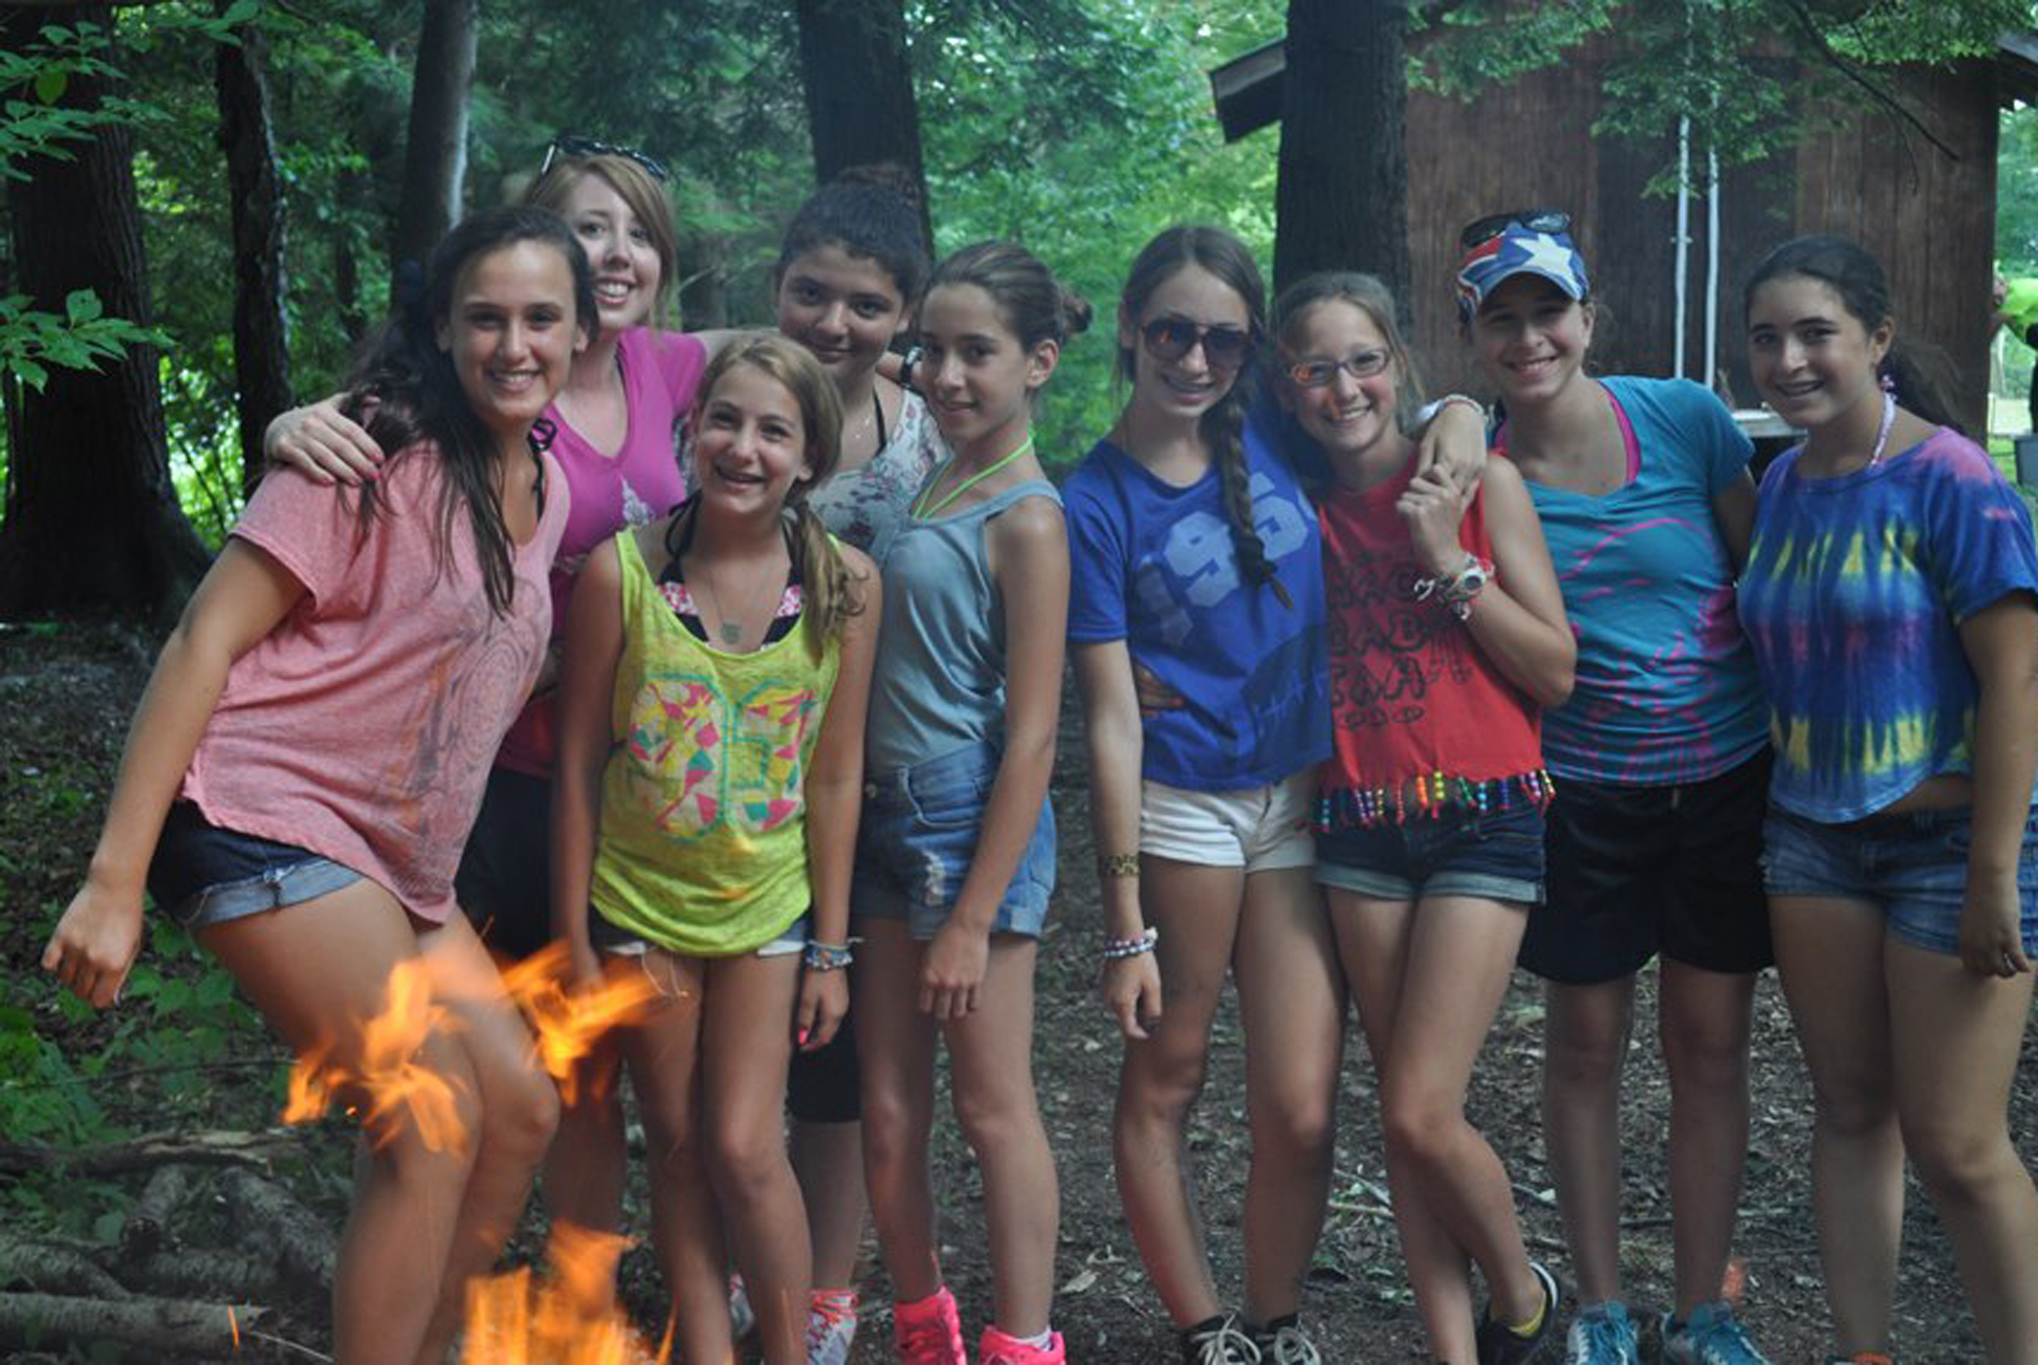 camp grove jewish single women Jewish alliance of greater rhode island serves the entire greater rhode island community, come see what the alliance has to offer you and your family.